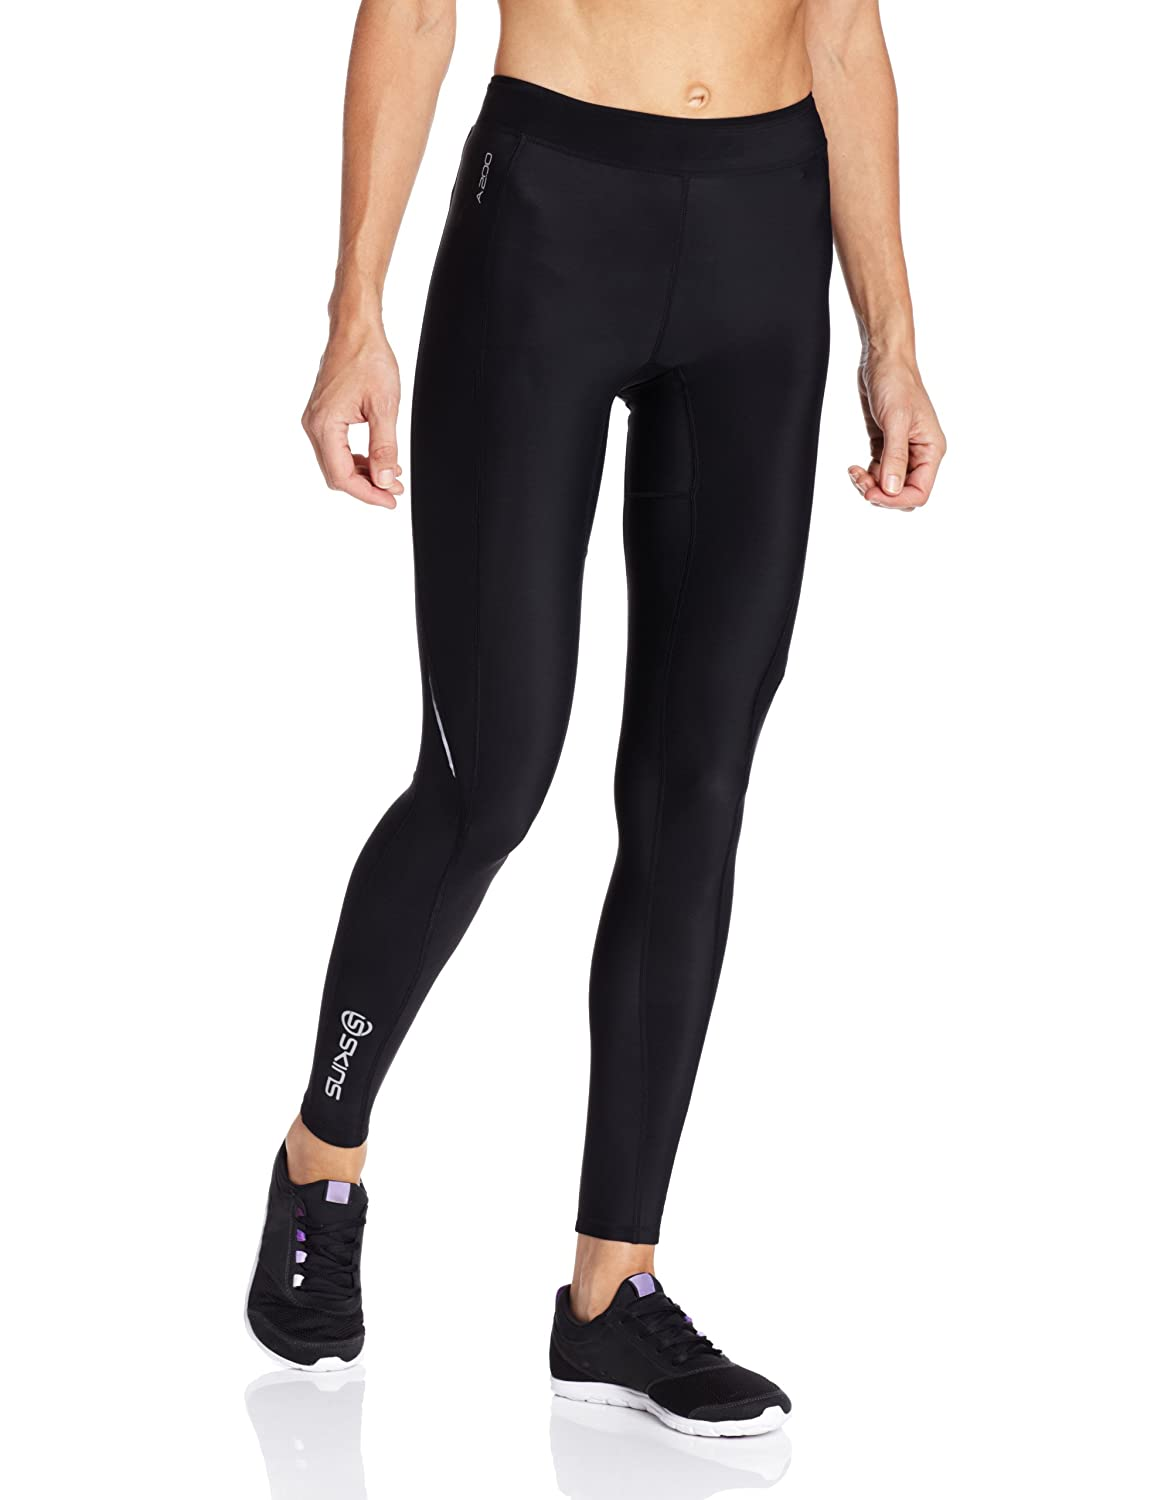 a427bb216cf72 Skins A200 Women's Compression Long Tights: Amazon.co.uk: Clothing